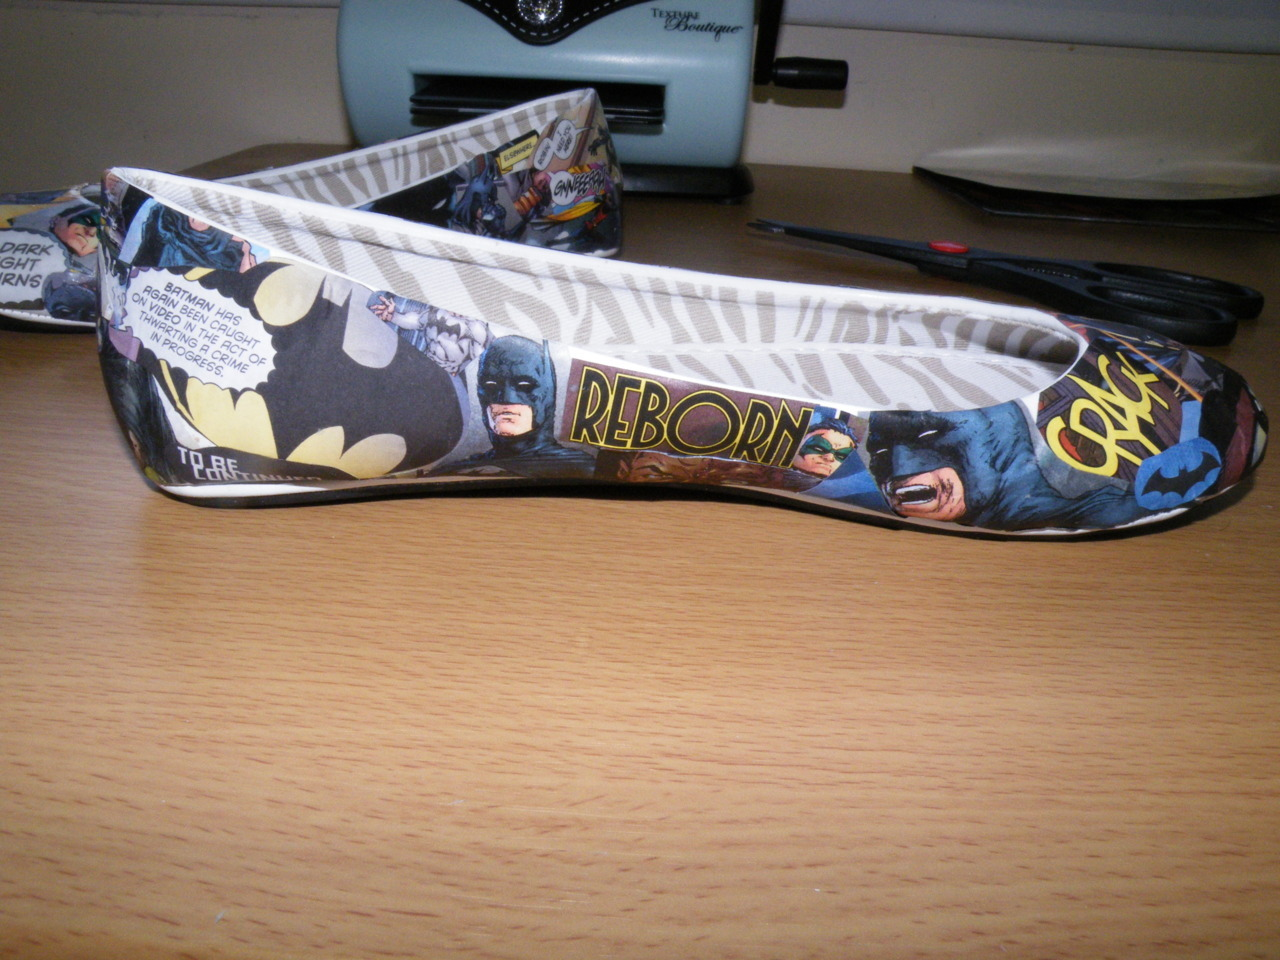 Super sweet geeky Batman flats.